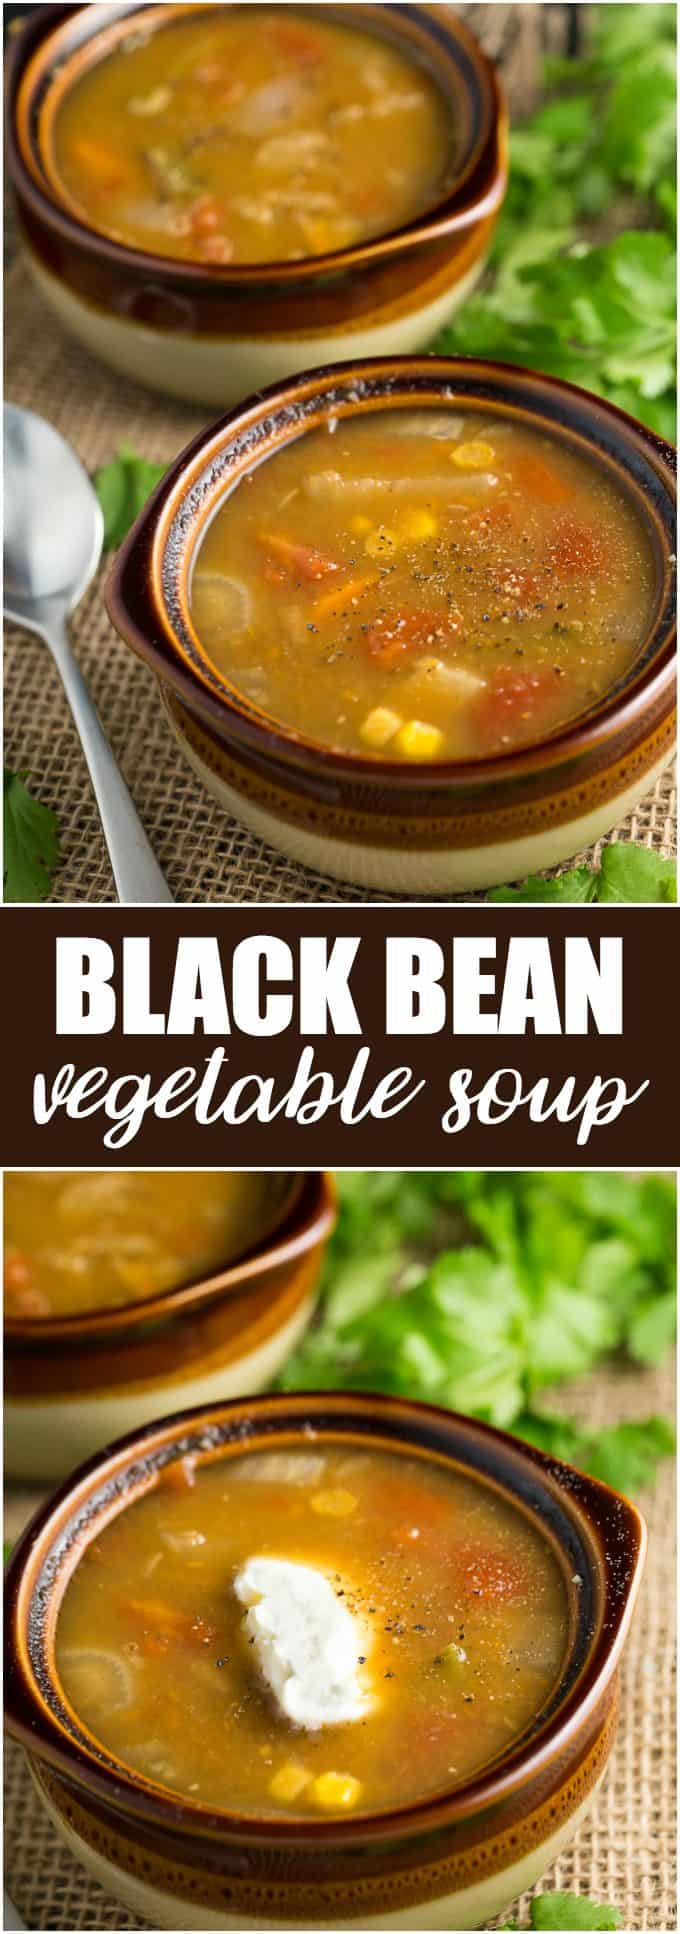 Black Bean Vegetable Soup - Hearty, healthy and delicious!